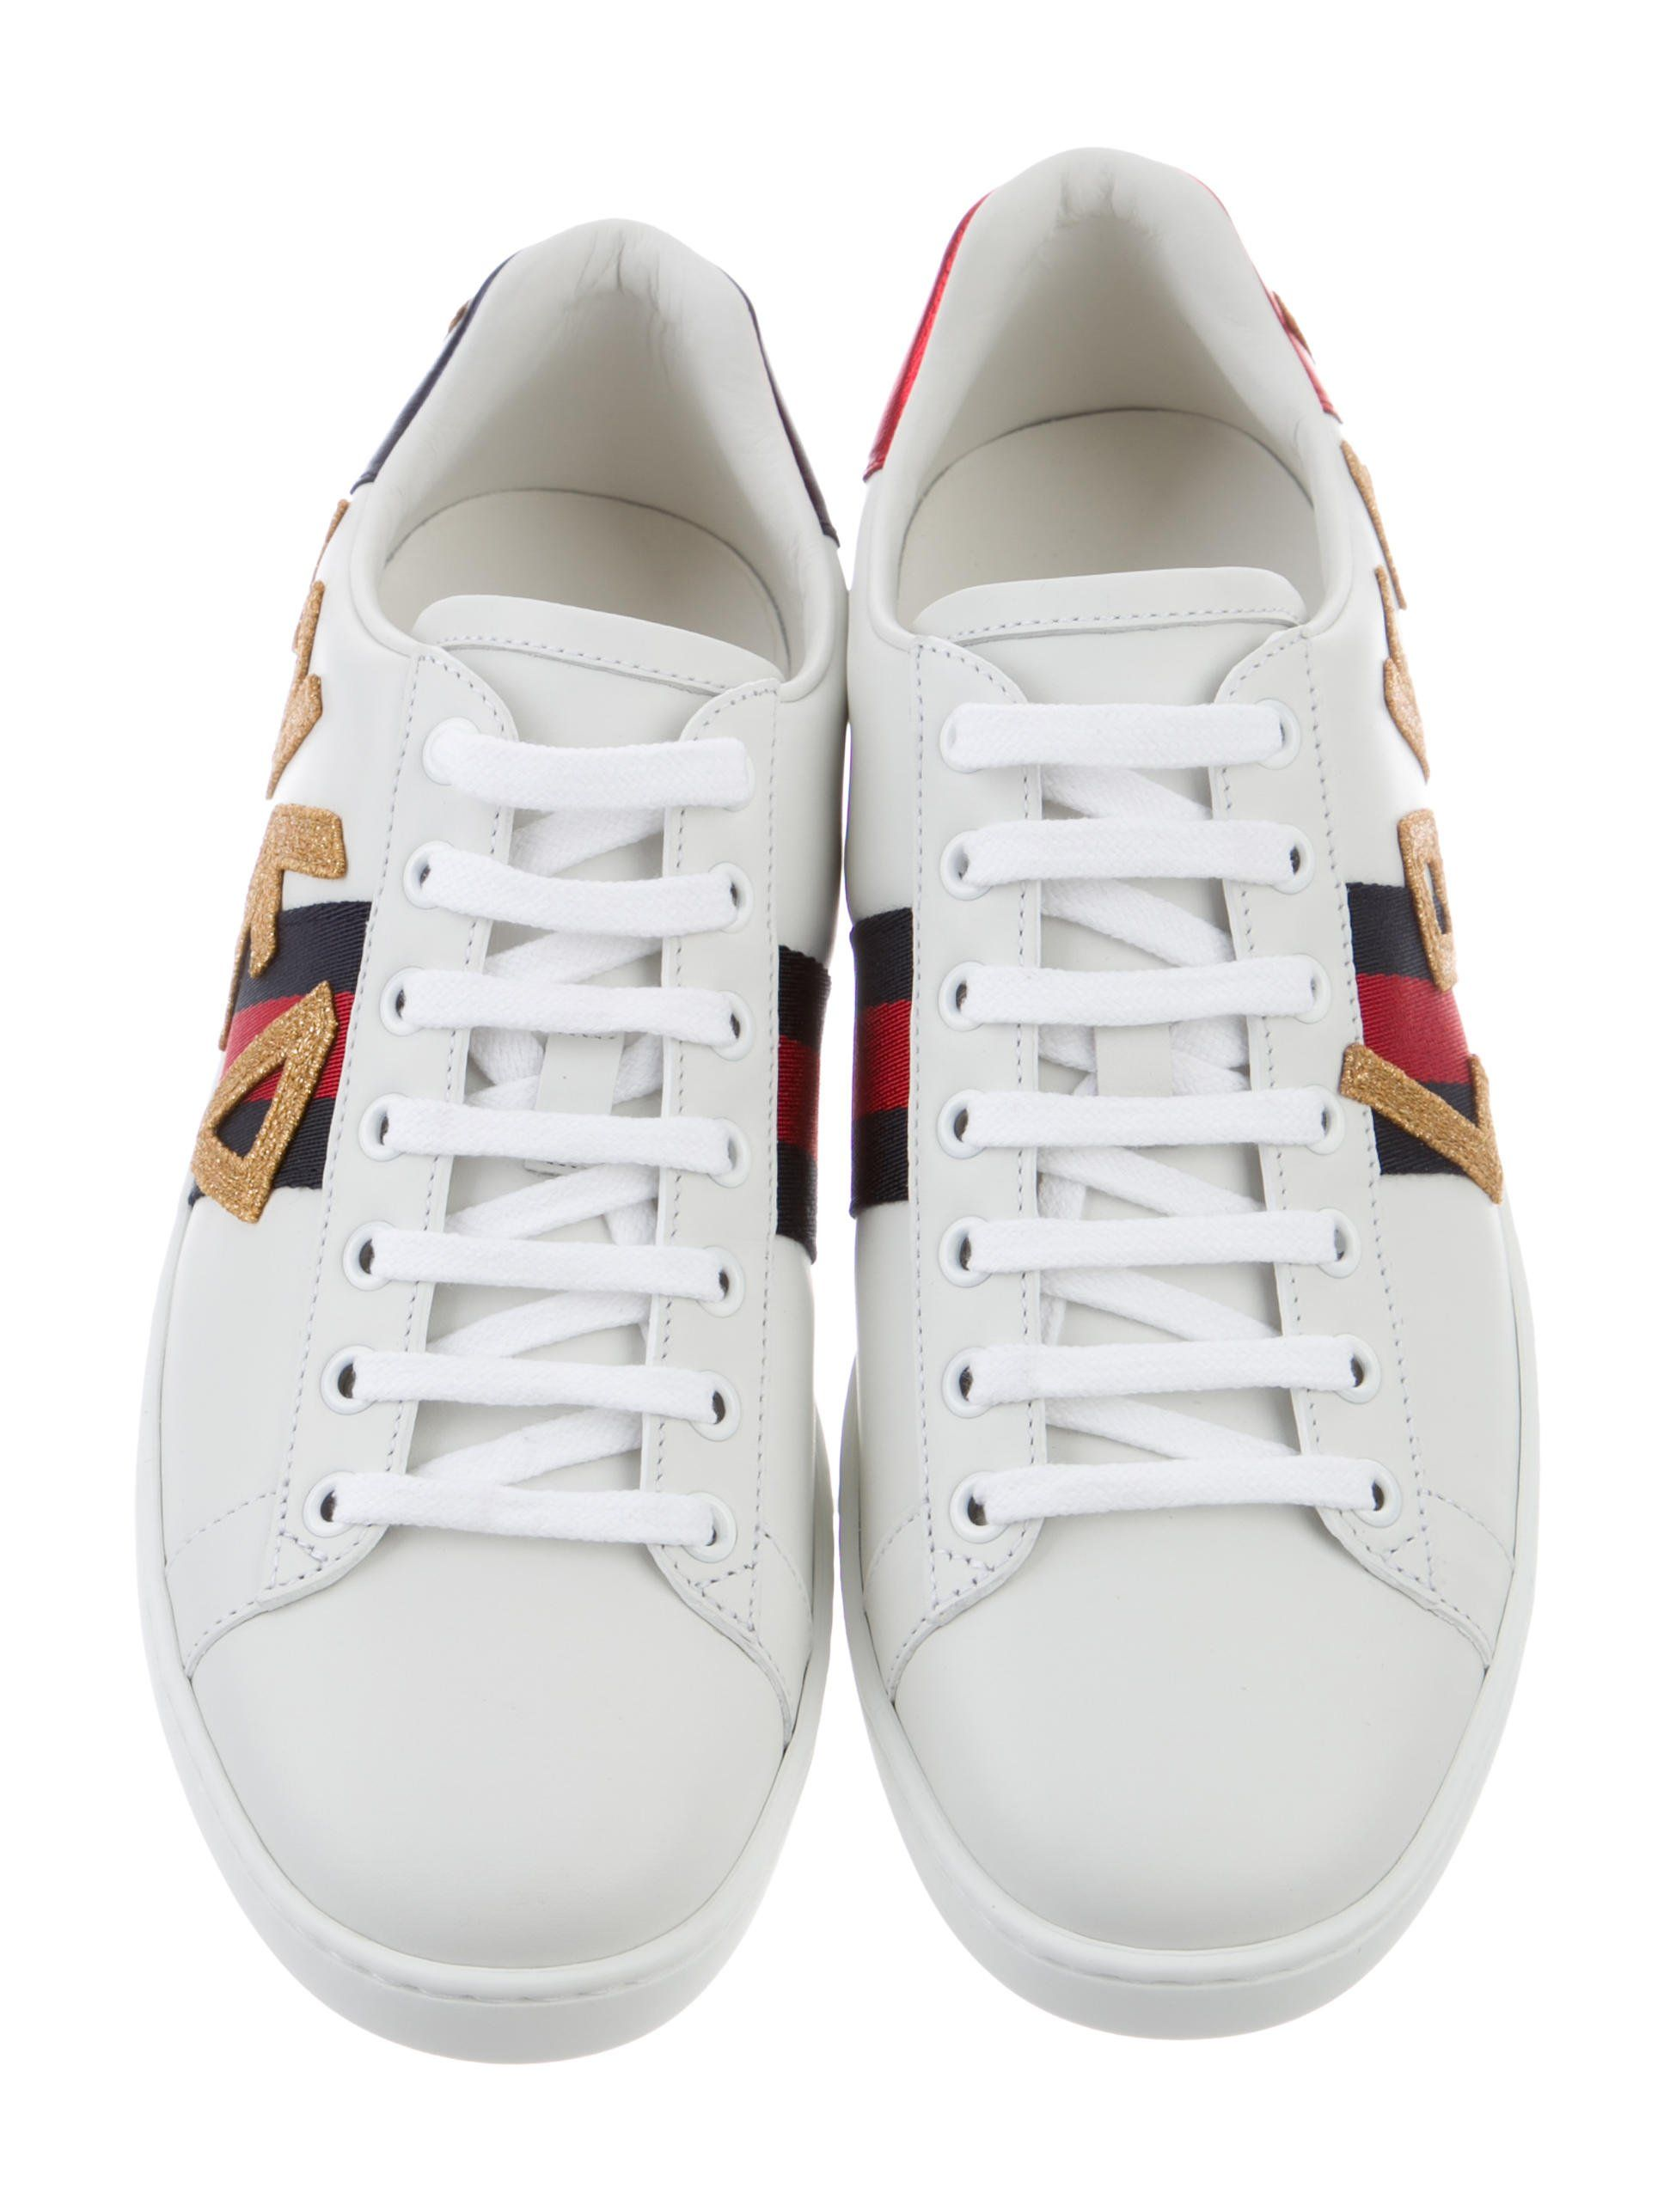 5268787fa18 White and multicolor leather Gucci Ace sneakers with lace-up closures at  vamps